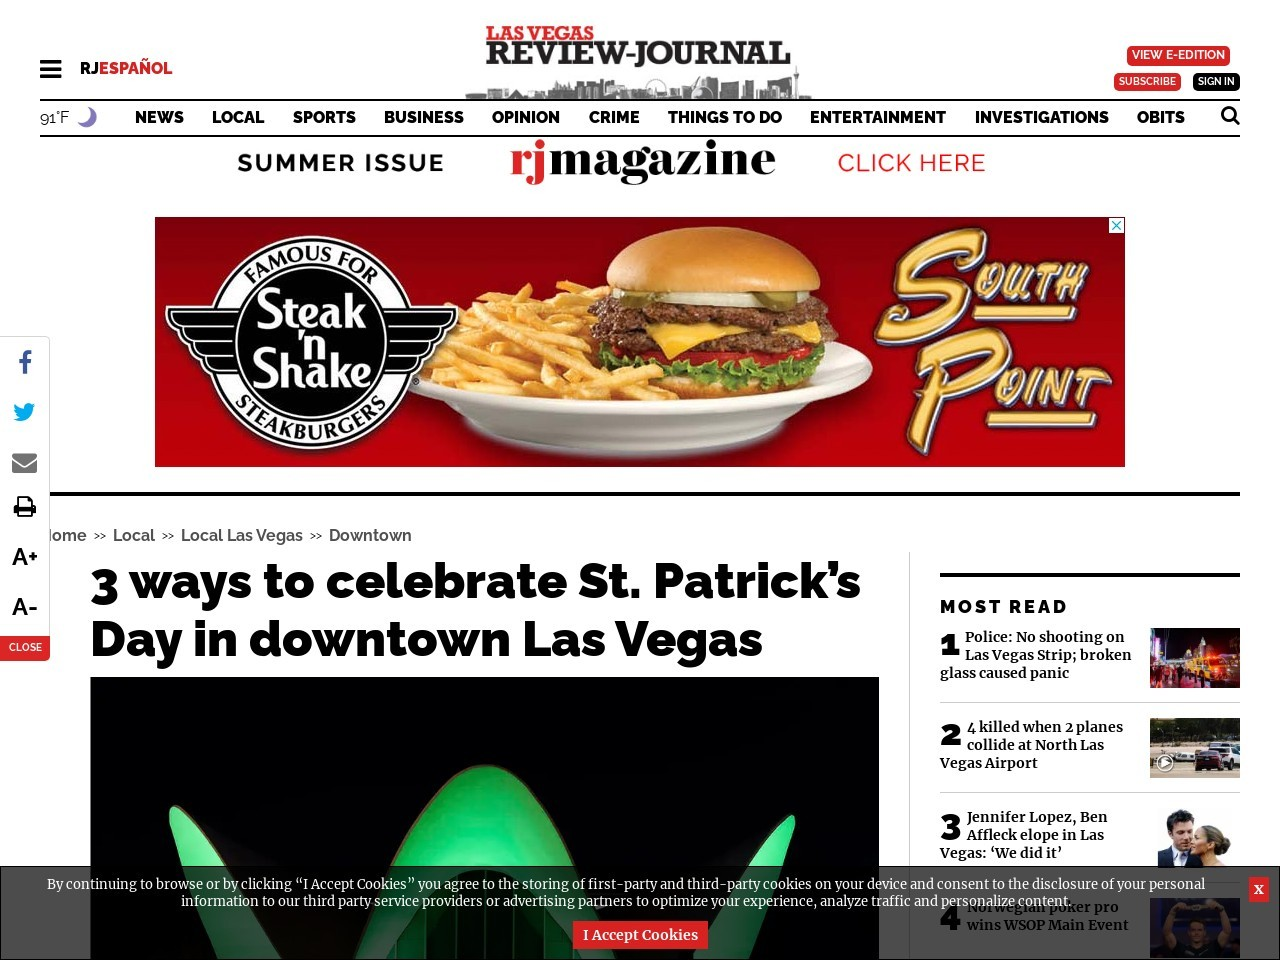 3 ways to celebrate St. Patrick's Day in downtown Las Vegas